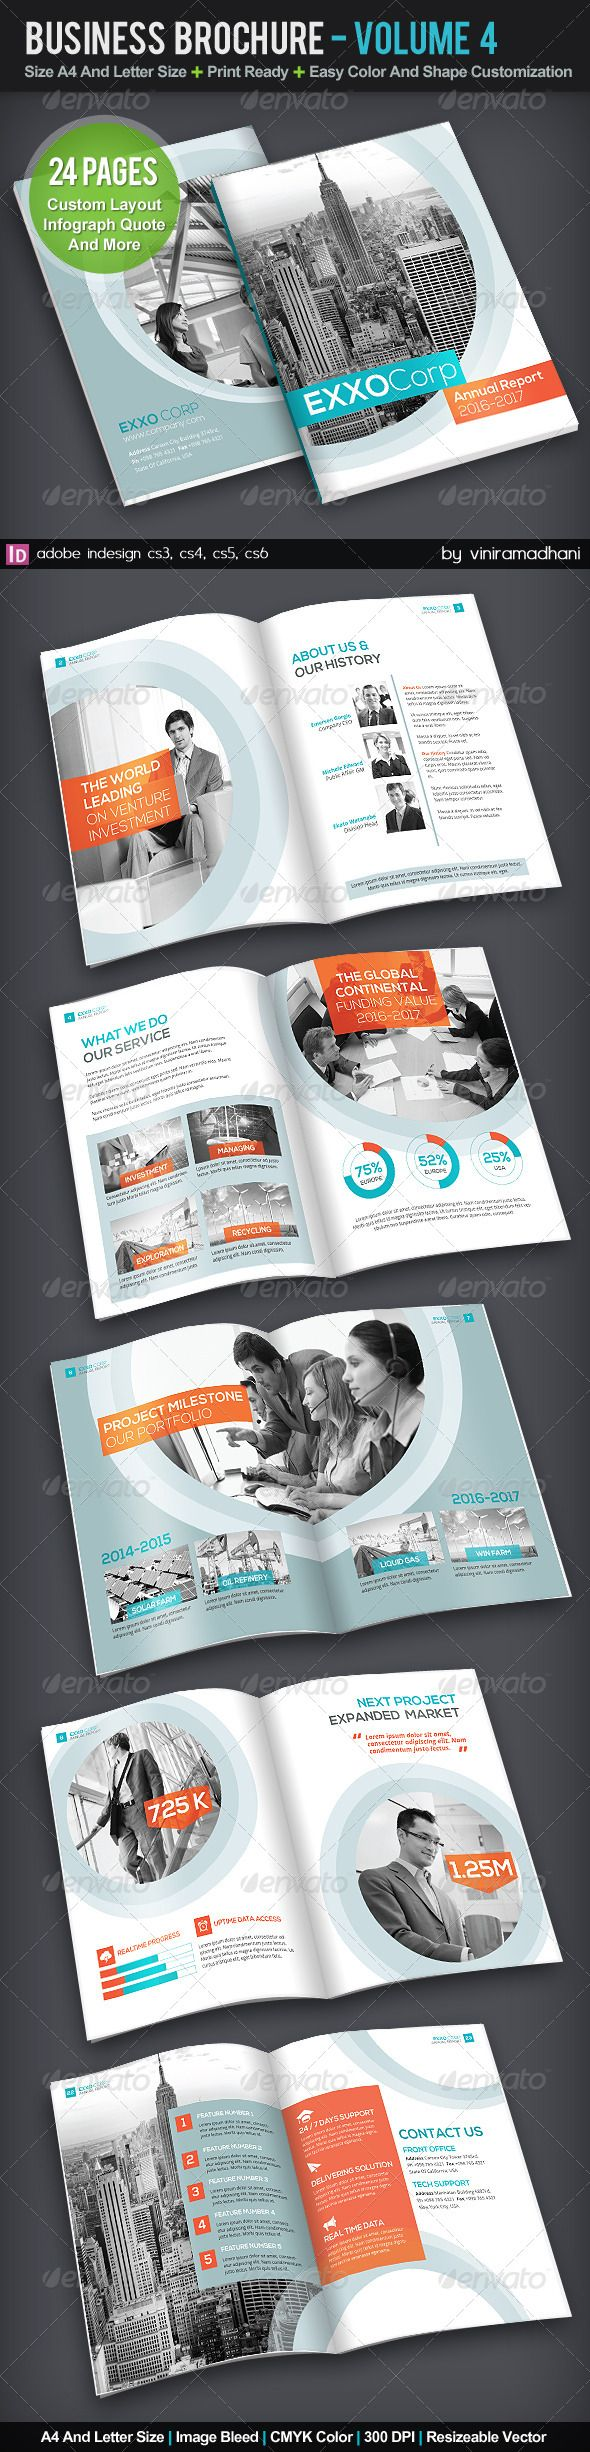 Business Brochure | Volume 4